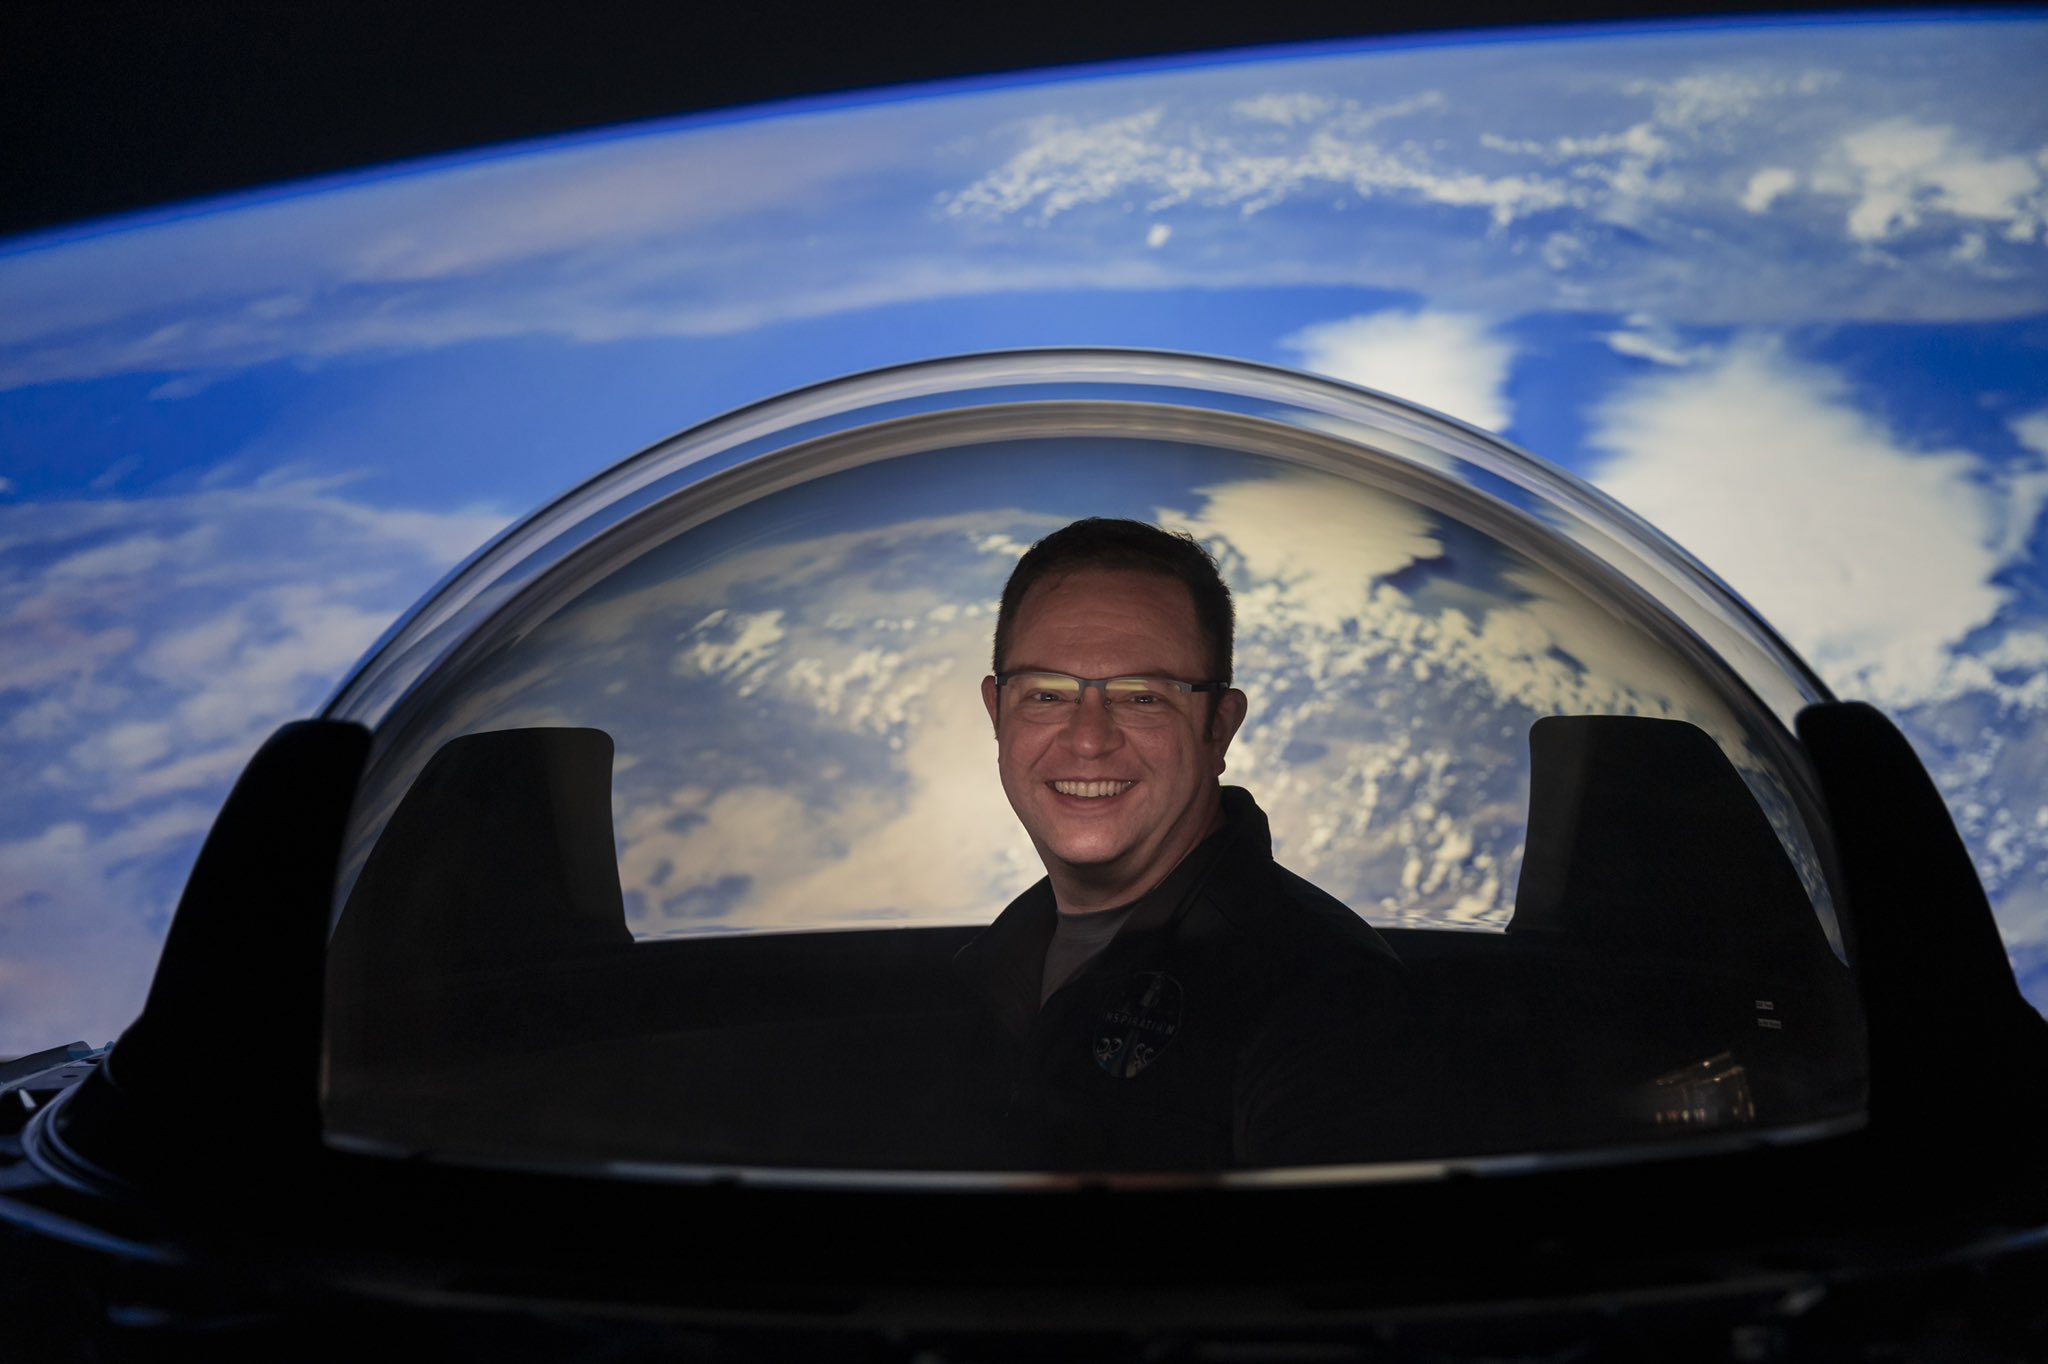 SpaceX Crew Dragons Cupola ontop.vn 4